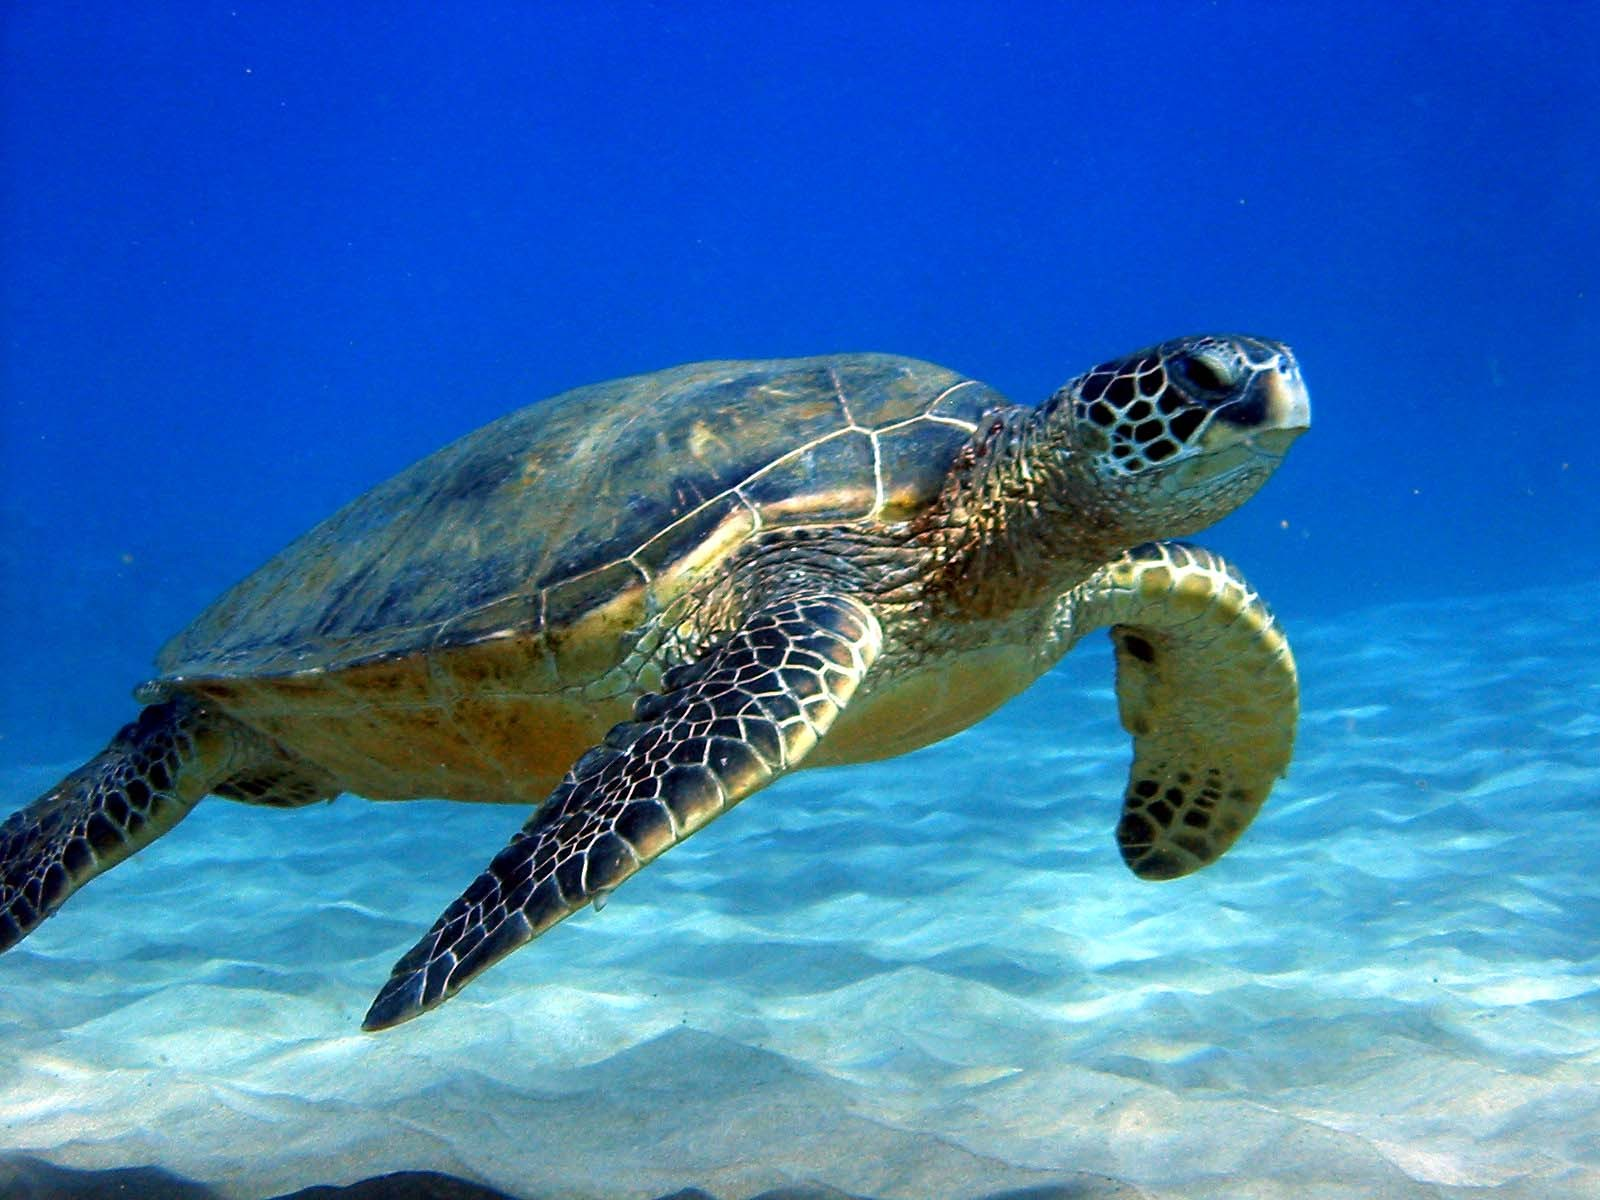 sea turtle HD Wallpapers Download Free sea turtle Tumblr - Pinterest Hd Wallpapers